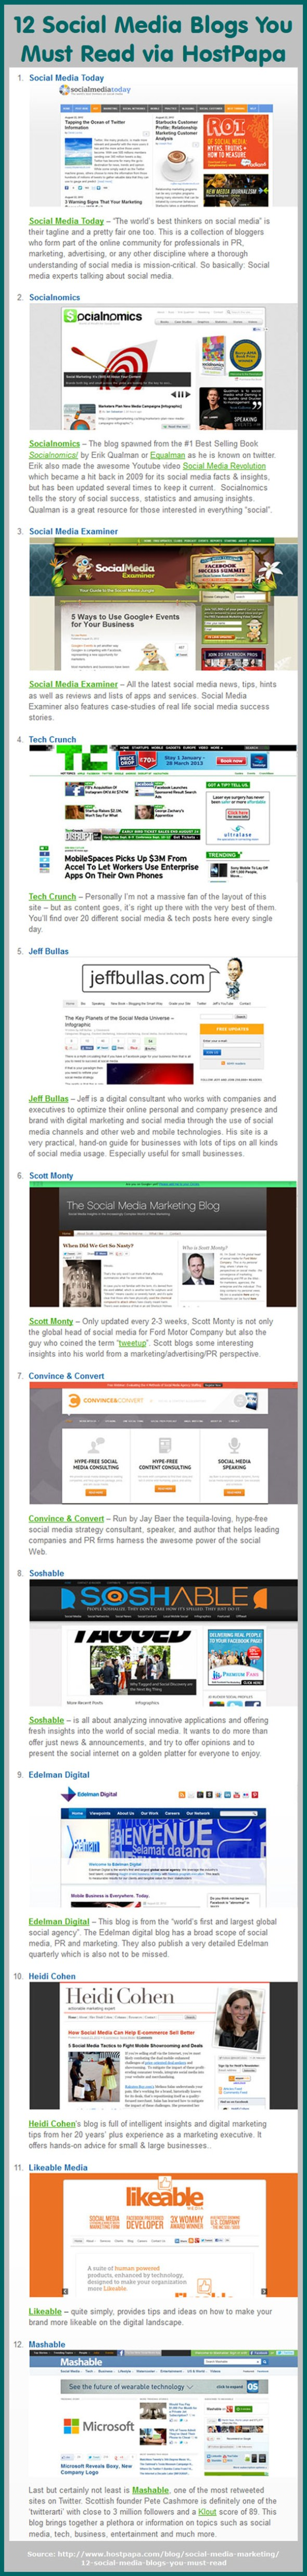 12 Social Media Blogs You Should Read